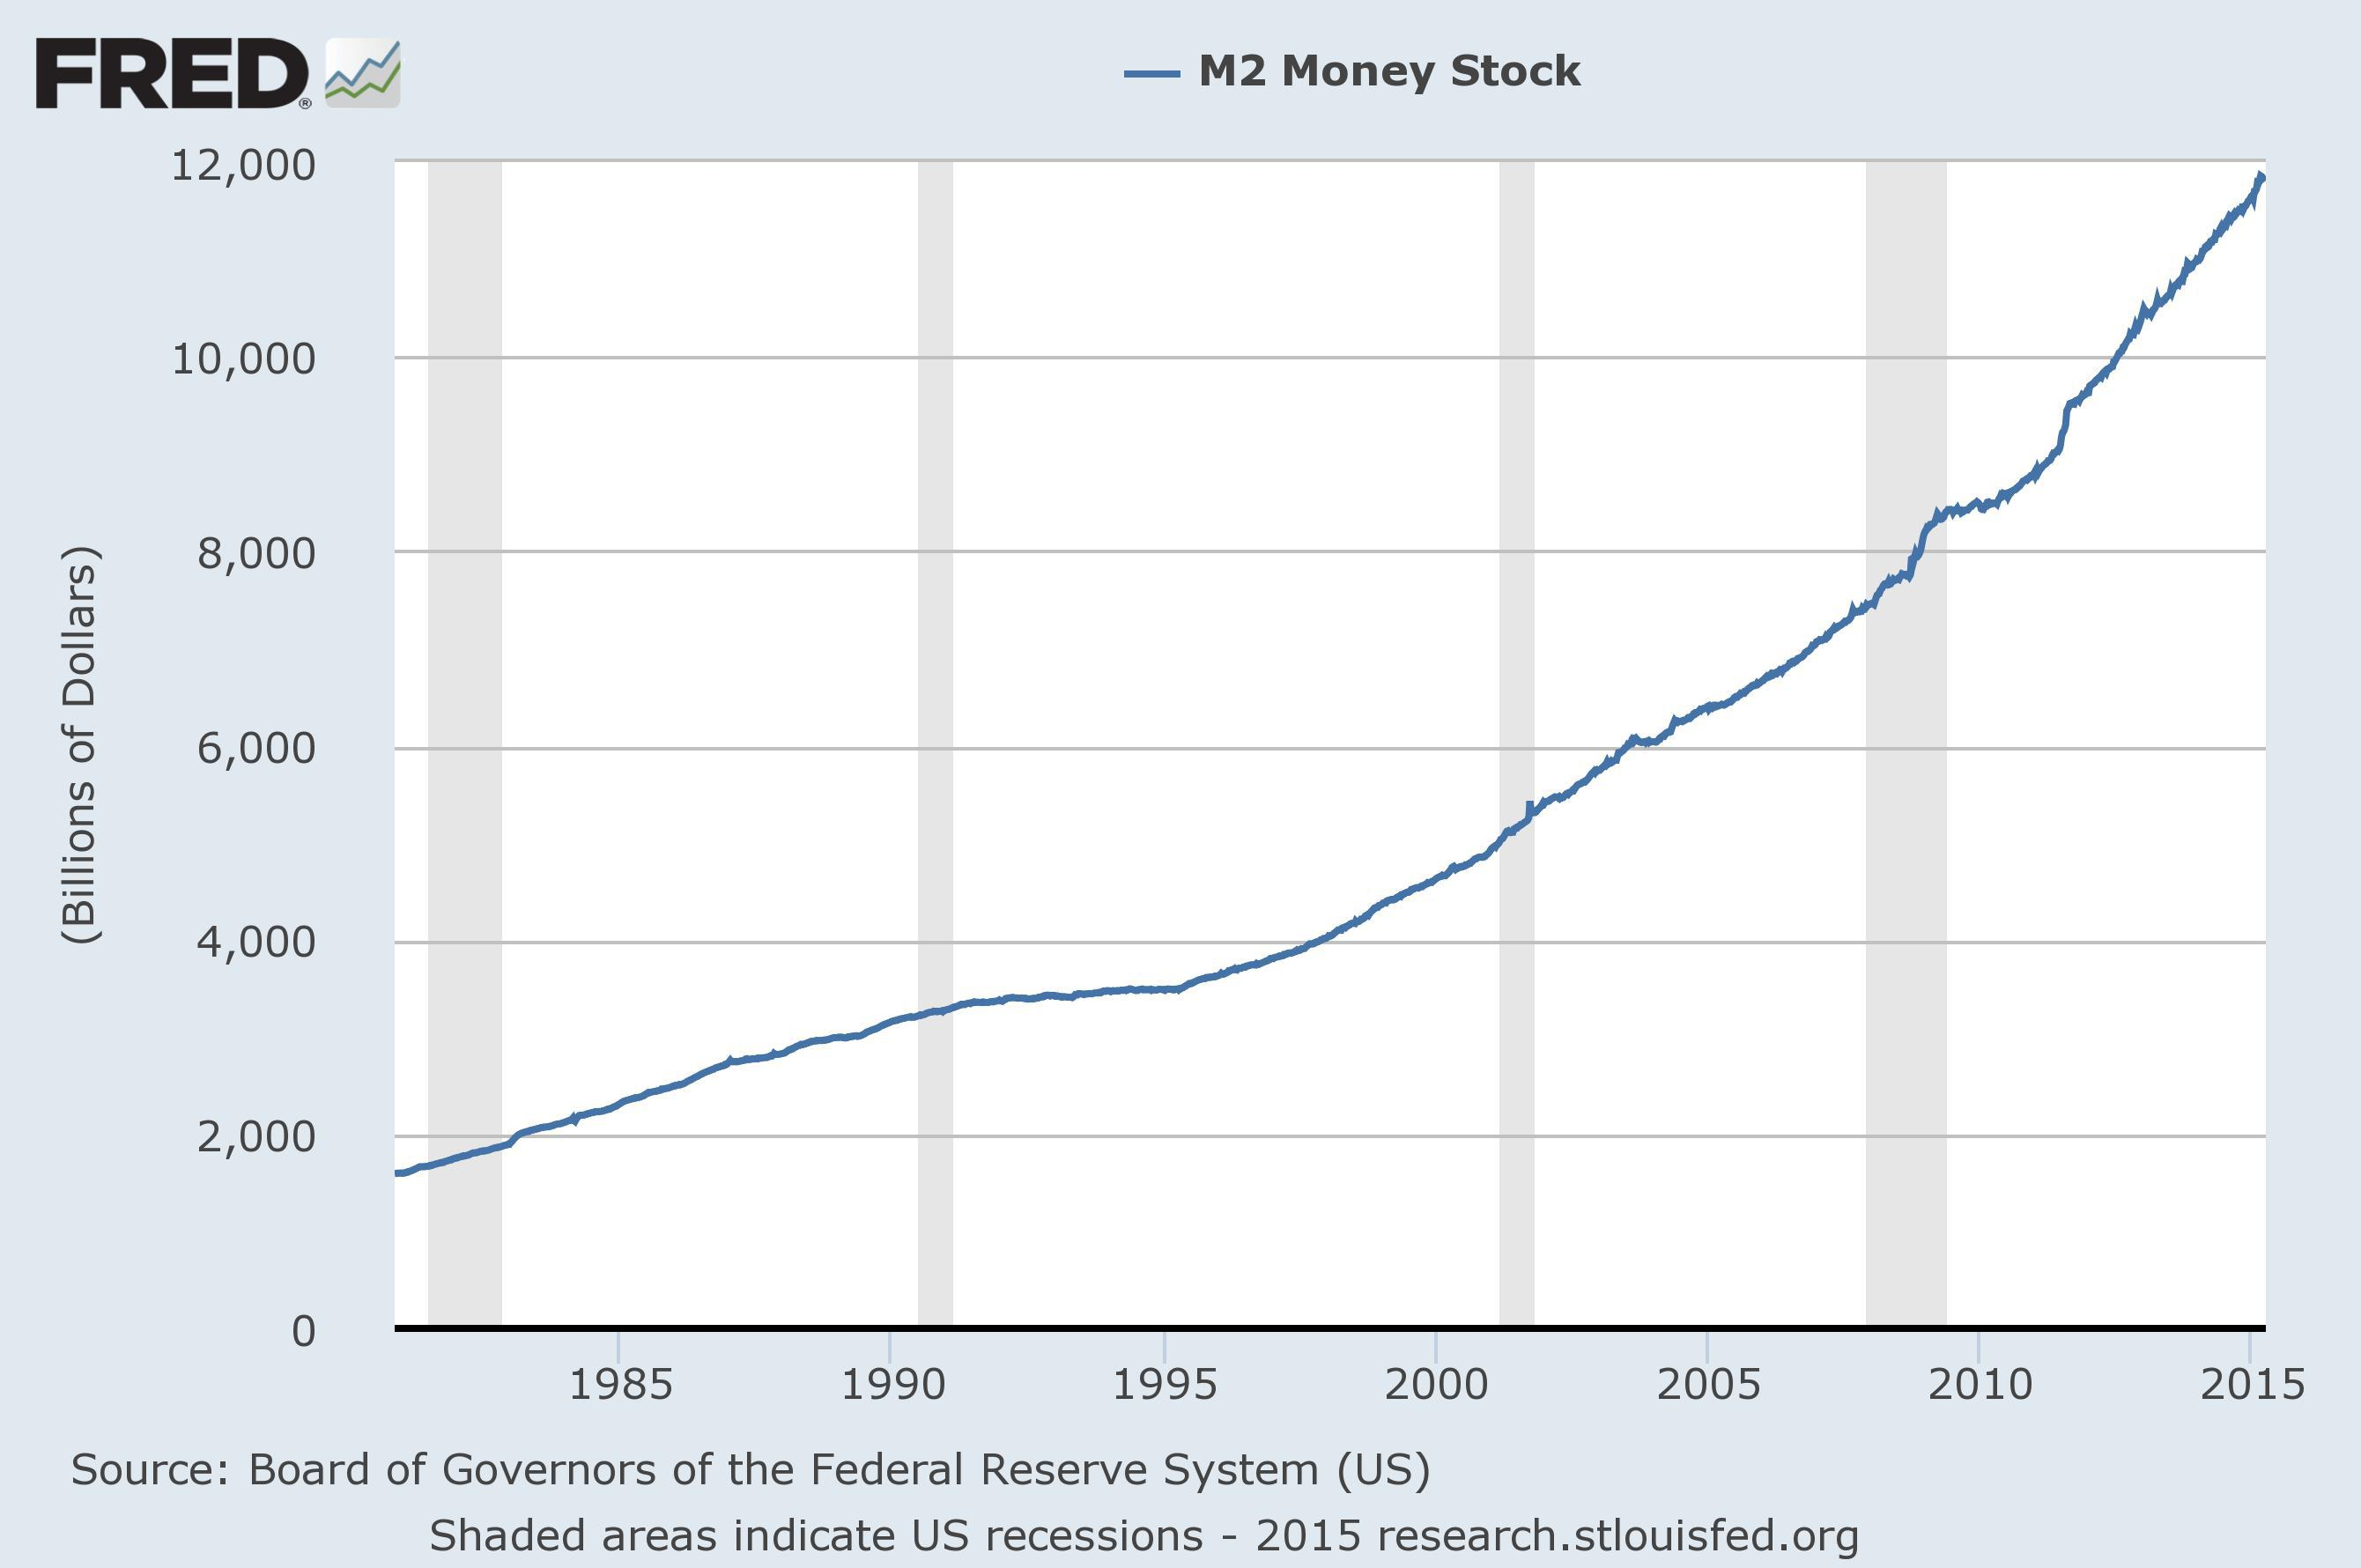 Why money velocity continues to decline seeking alpha both m1 and m2 have surged and this has translated into lower m1 and m2 money velocity even when the gdp growth has been robust in the recent past nvjuhfo Gallery